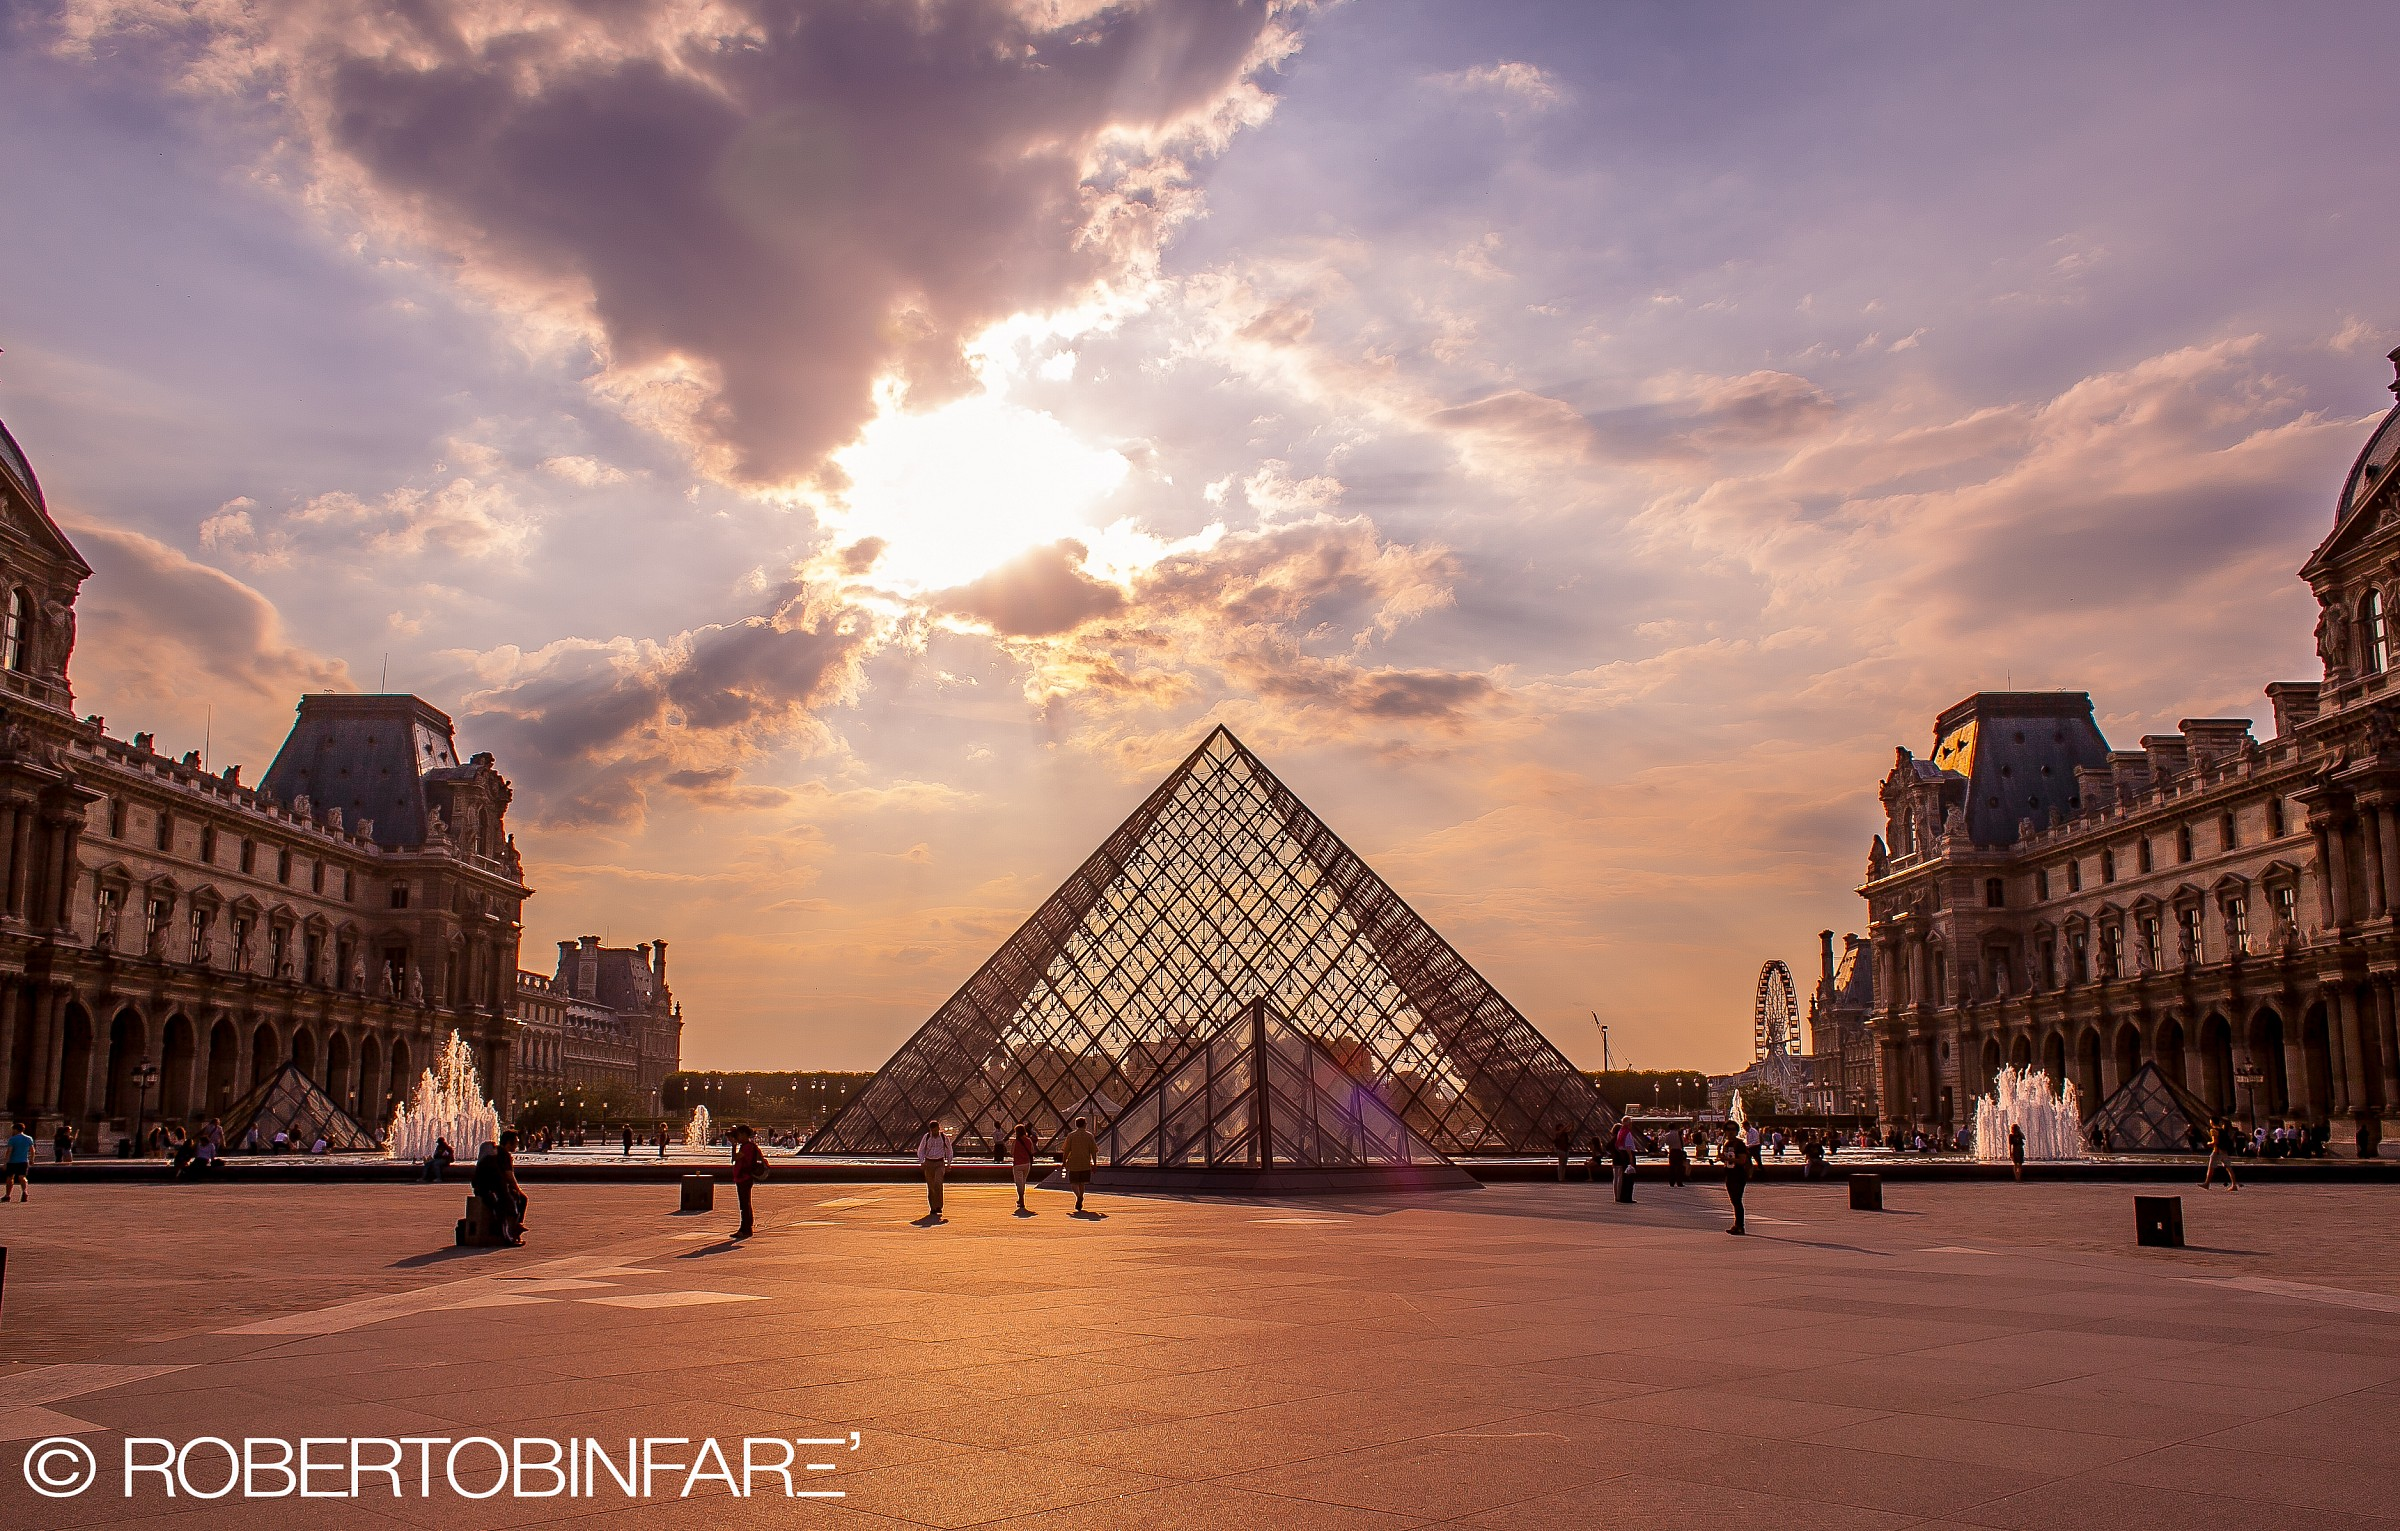 The Pyramids at the Louvre...